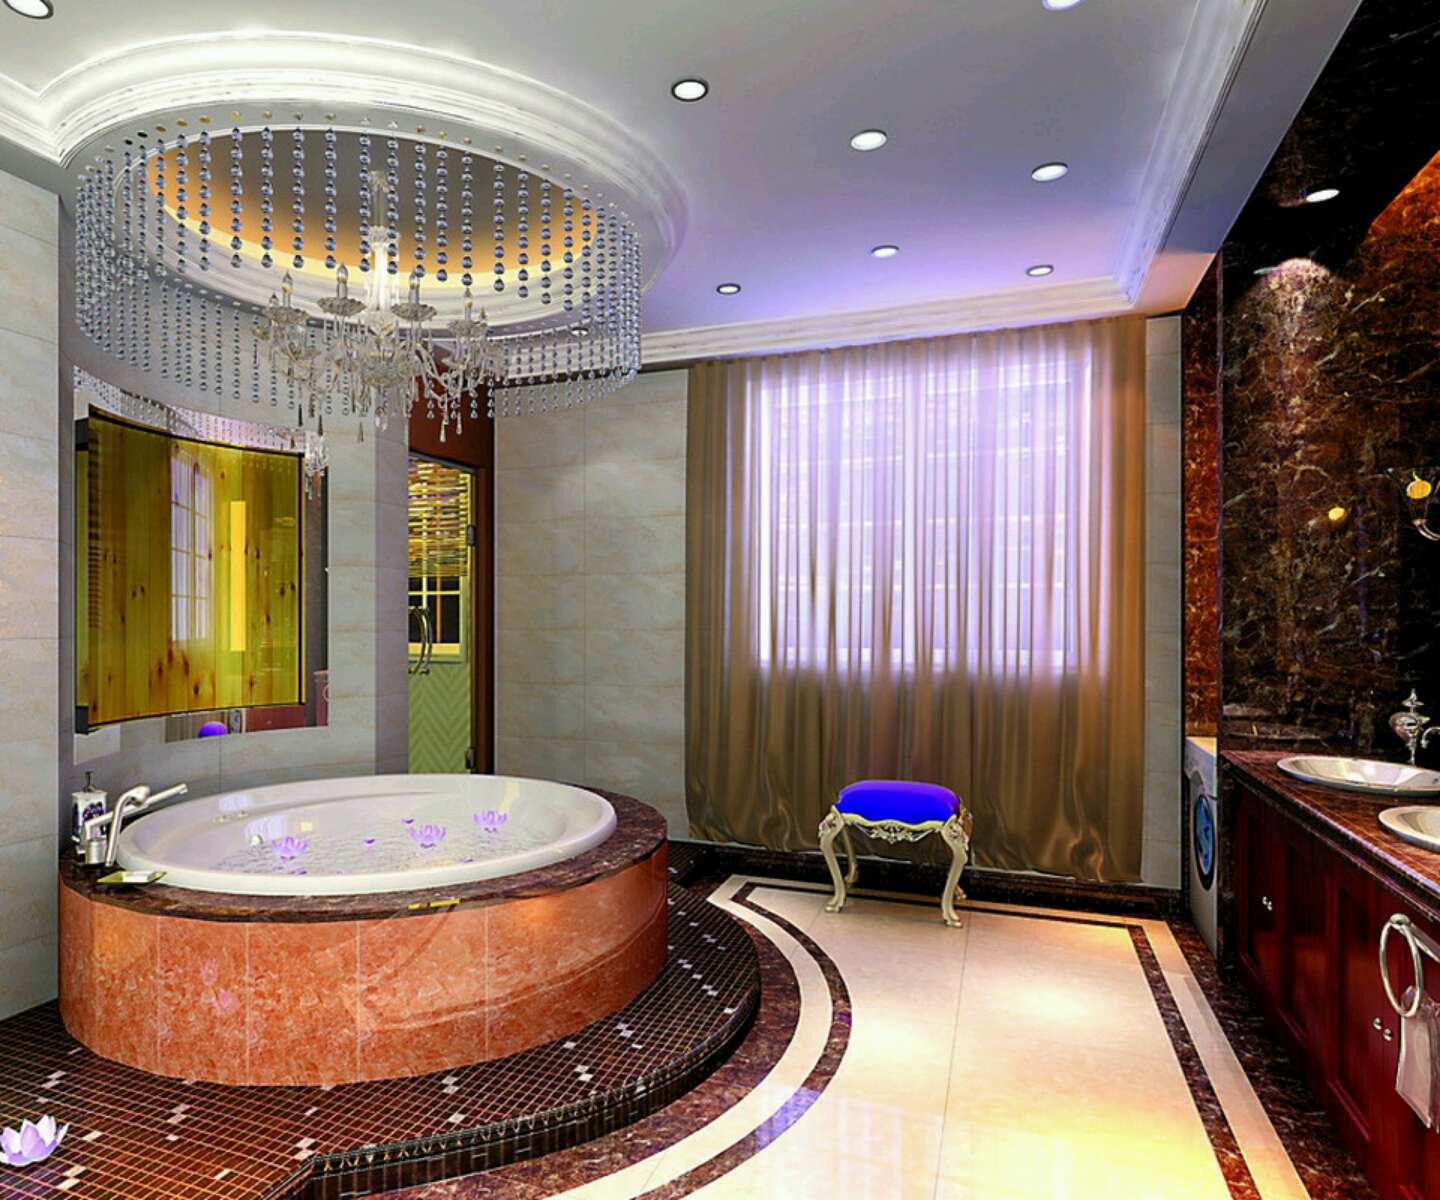 Cool bathrooms designs hd wallpapers 2015 for Bathroom designs hd images